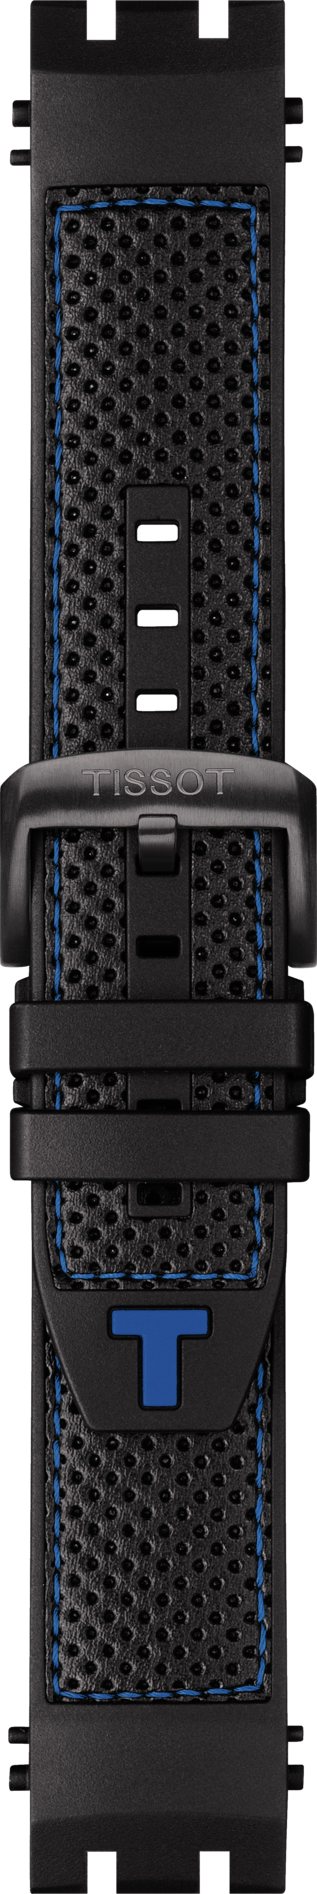 Tissot T-Race Model # T115417 Black / Blue Rubber Watch Band - WATCHBAND EXPERT